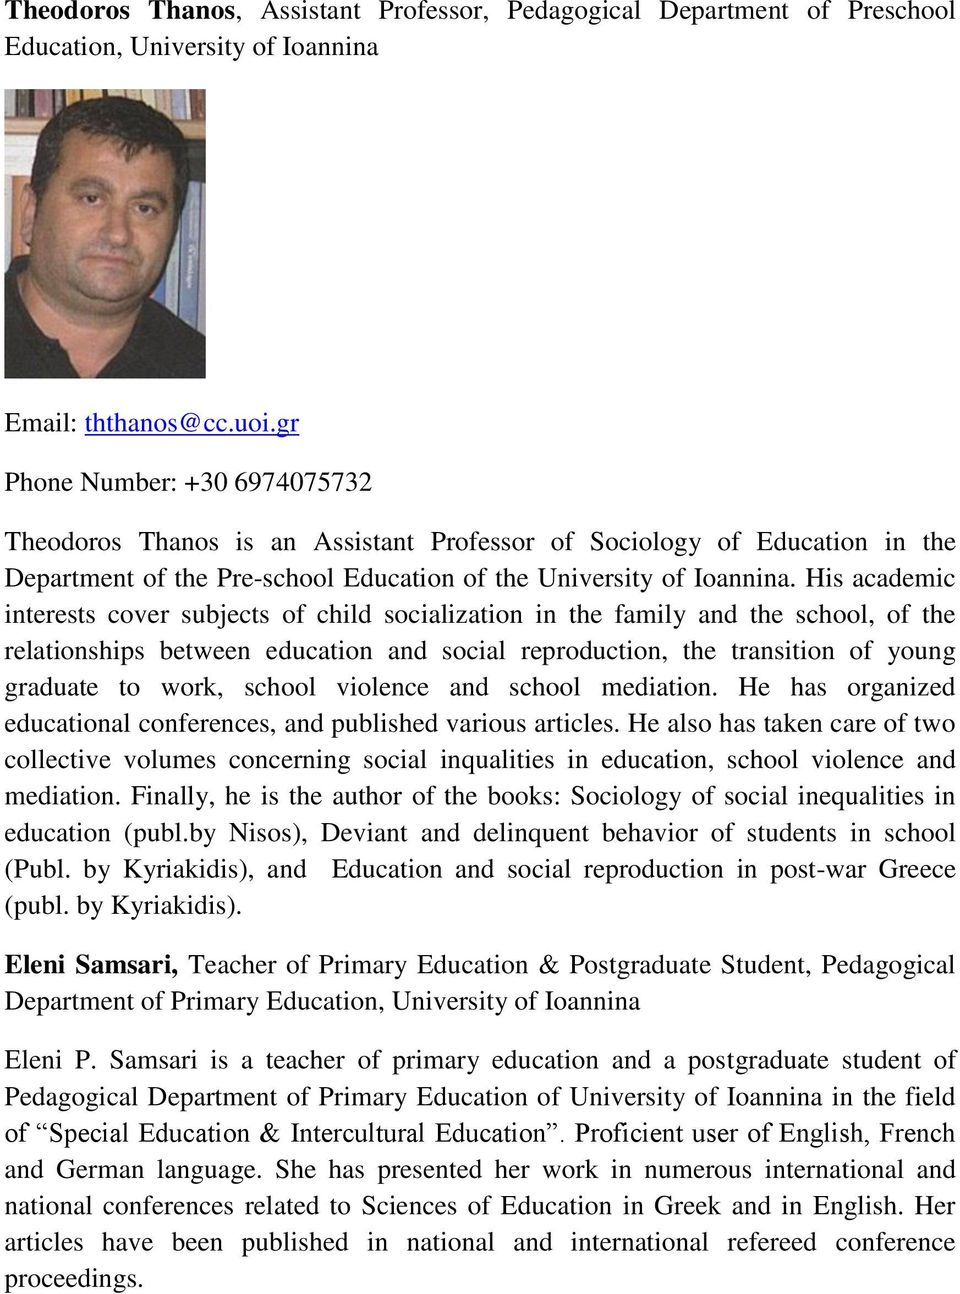 His academic interests cover subjects of child socialization in the family and the school, of the relationships between education and social reproduction, the transition of young graduate to work,